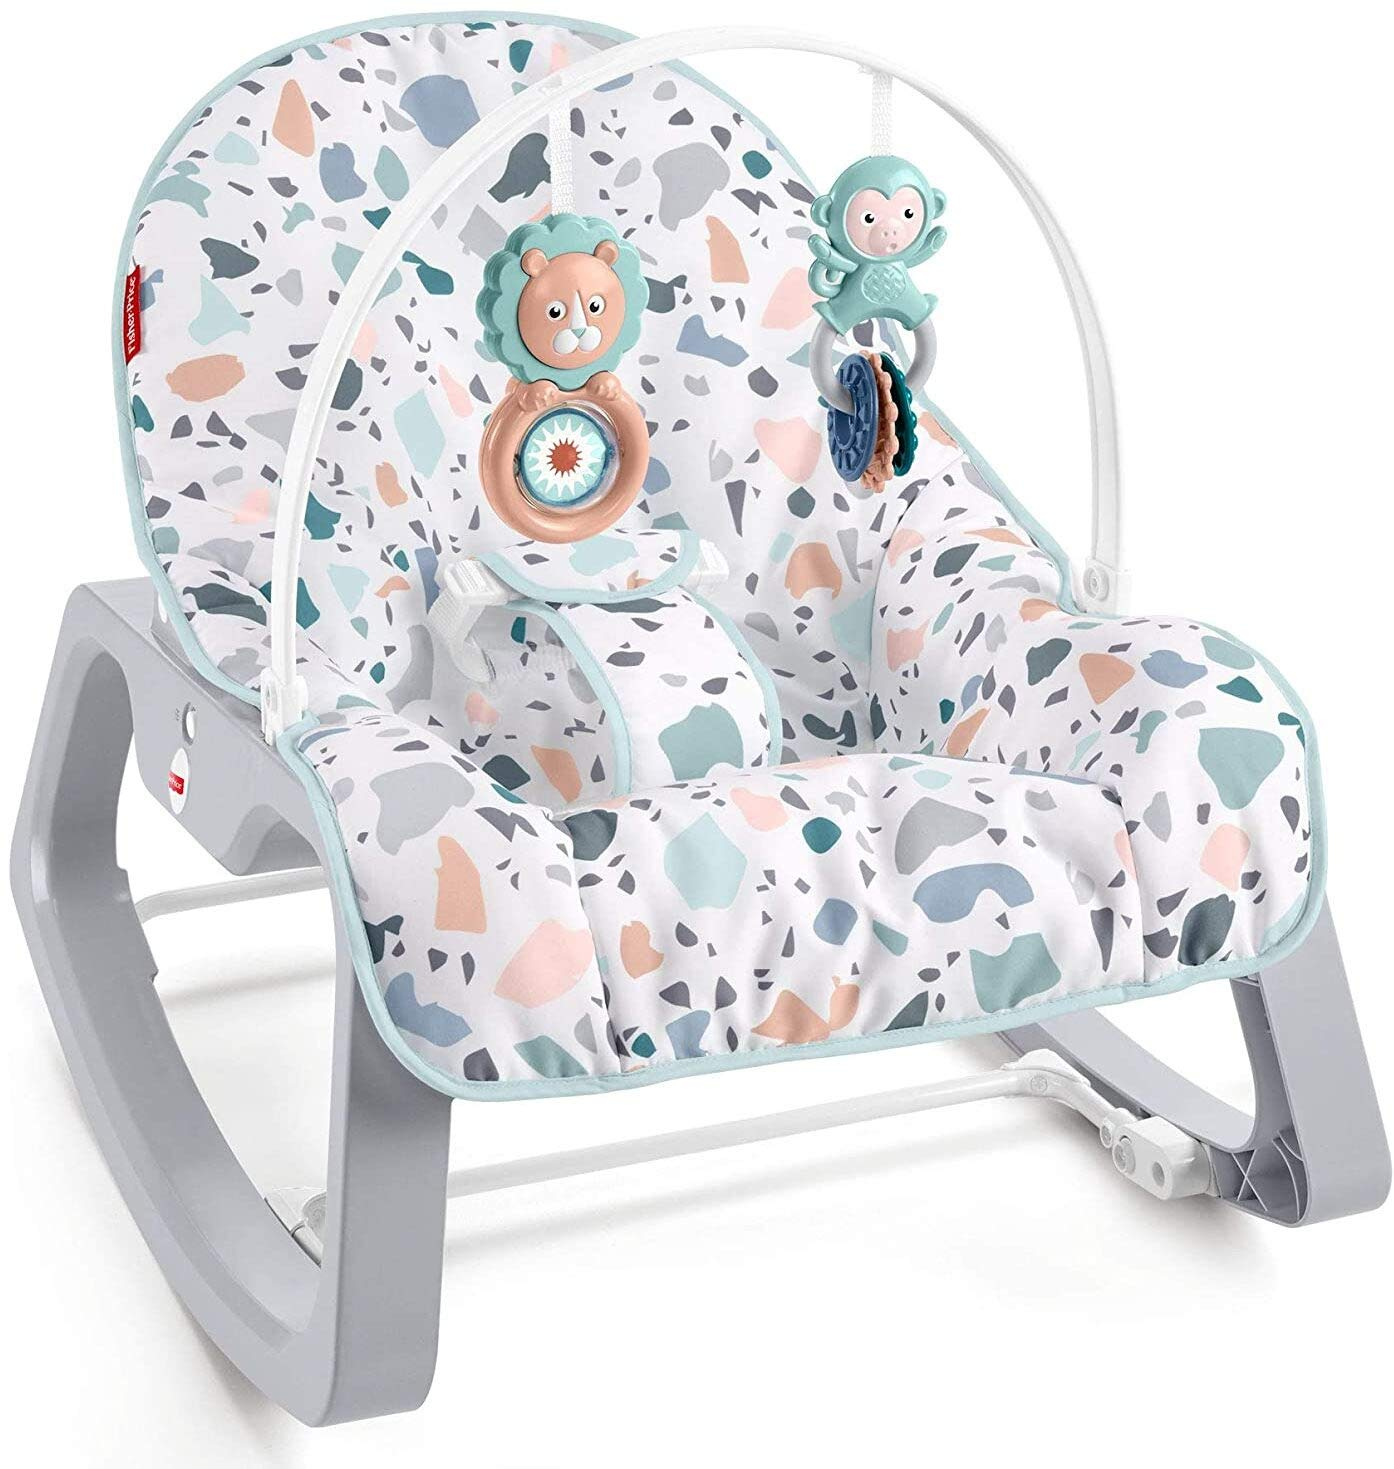 71JXk2UYo7L. SL1469 The Best Fisher-Price Baby Swings for 2021 Review